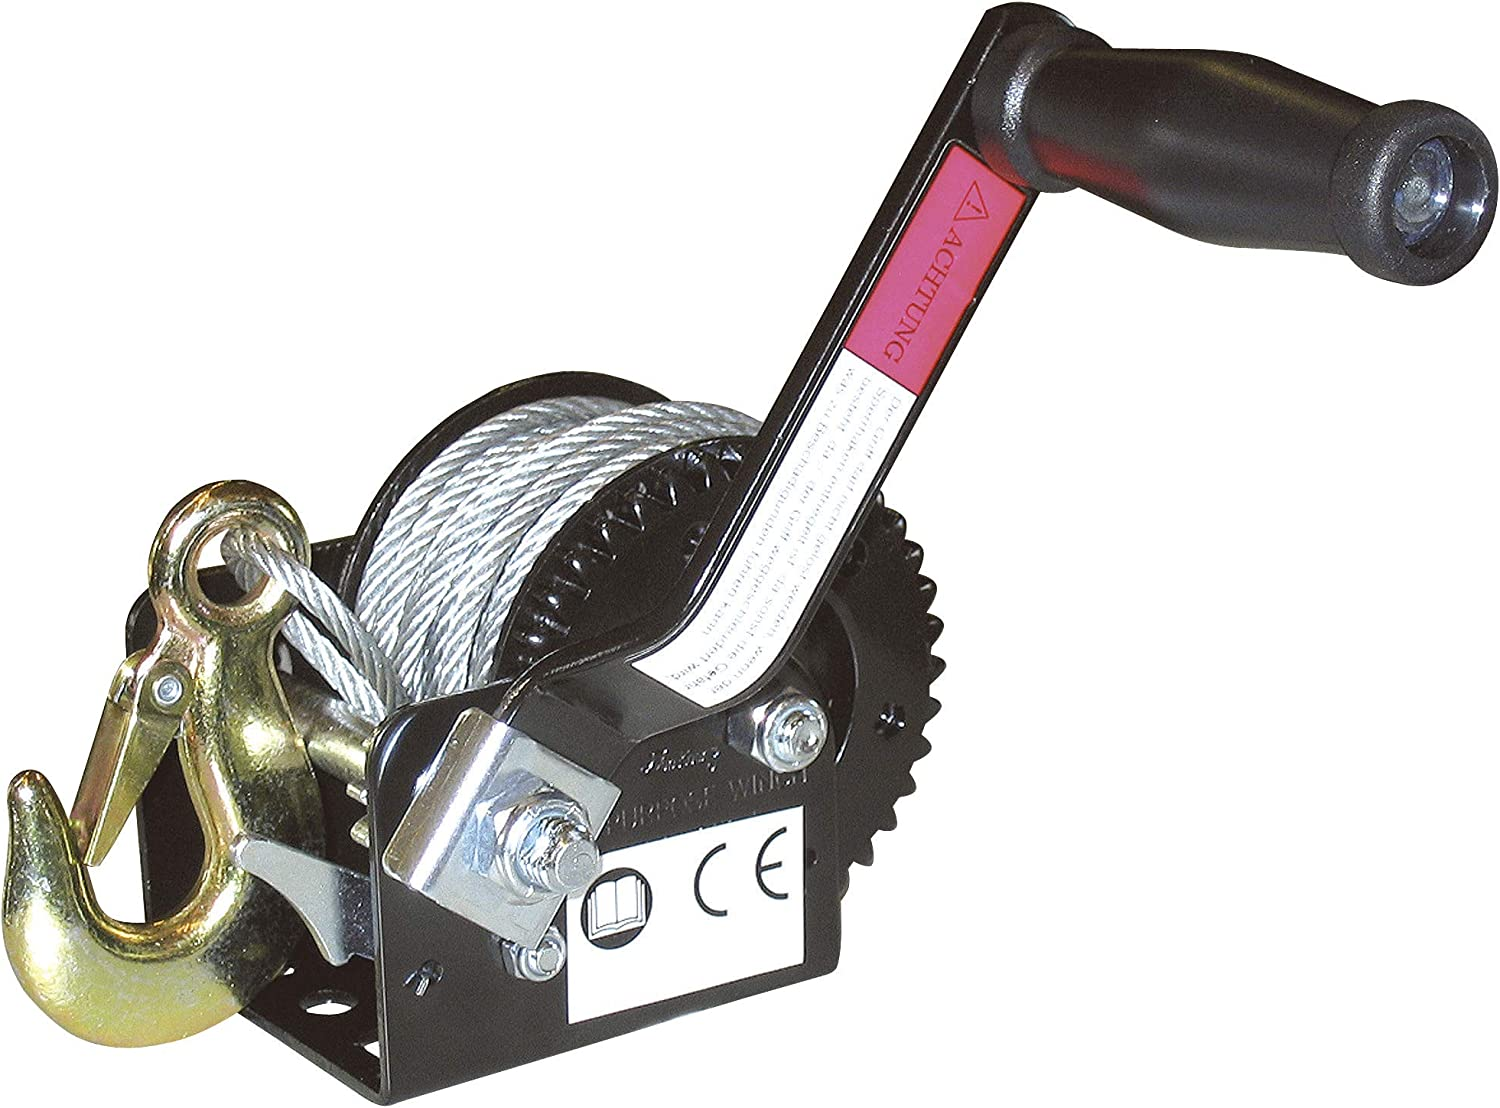 Kerbl cable winch, hand winch